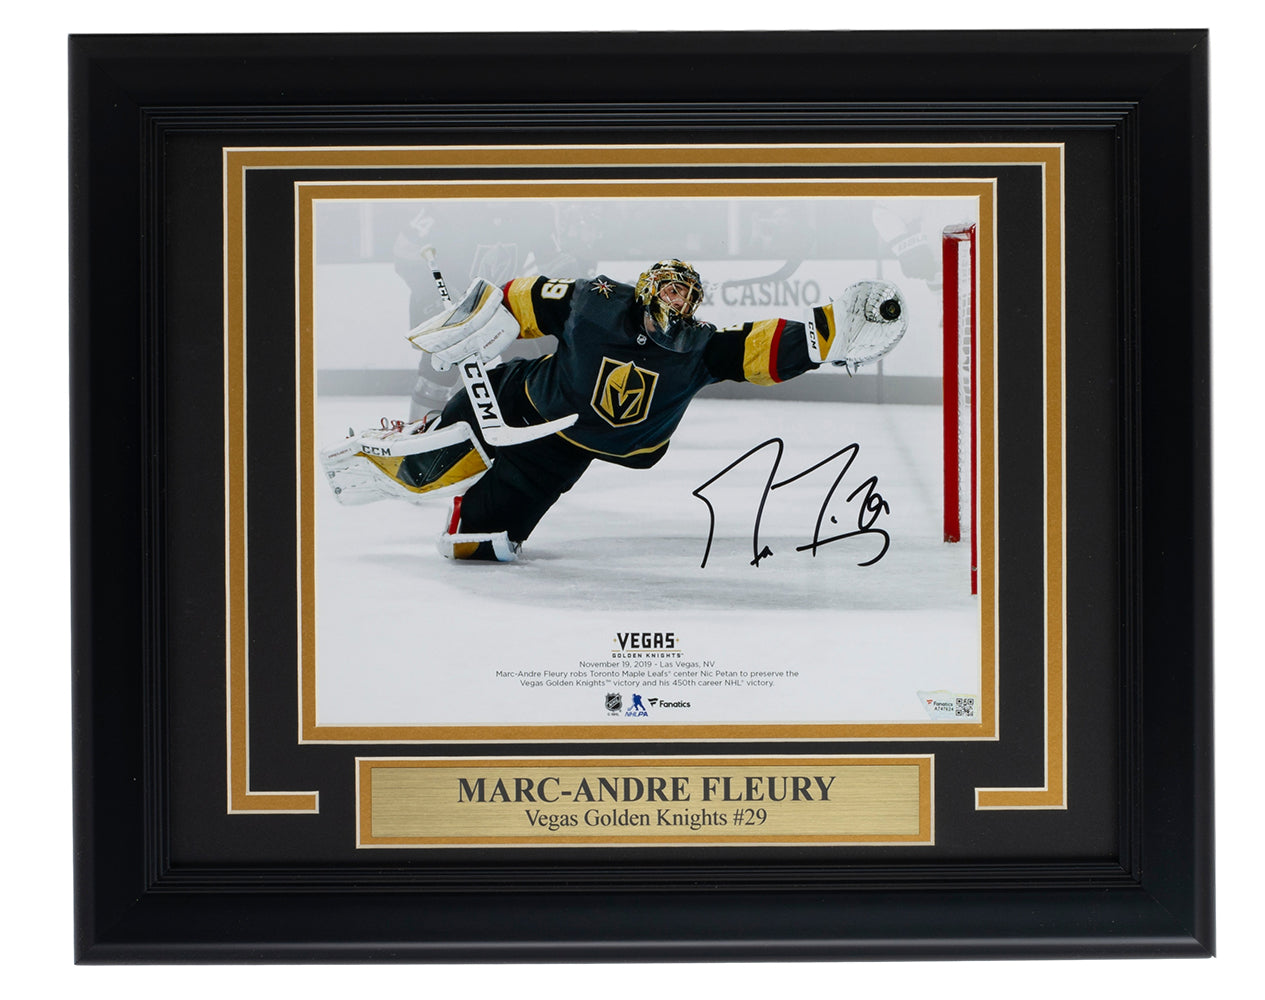 Marc-Andre Fleury Signed Framed 8x10 Golden Knights Photo Fanatics